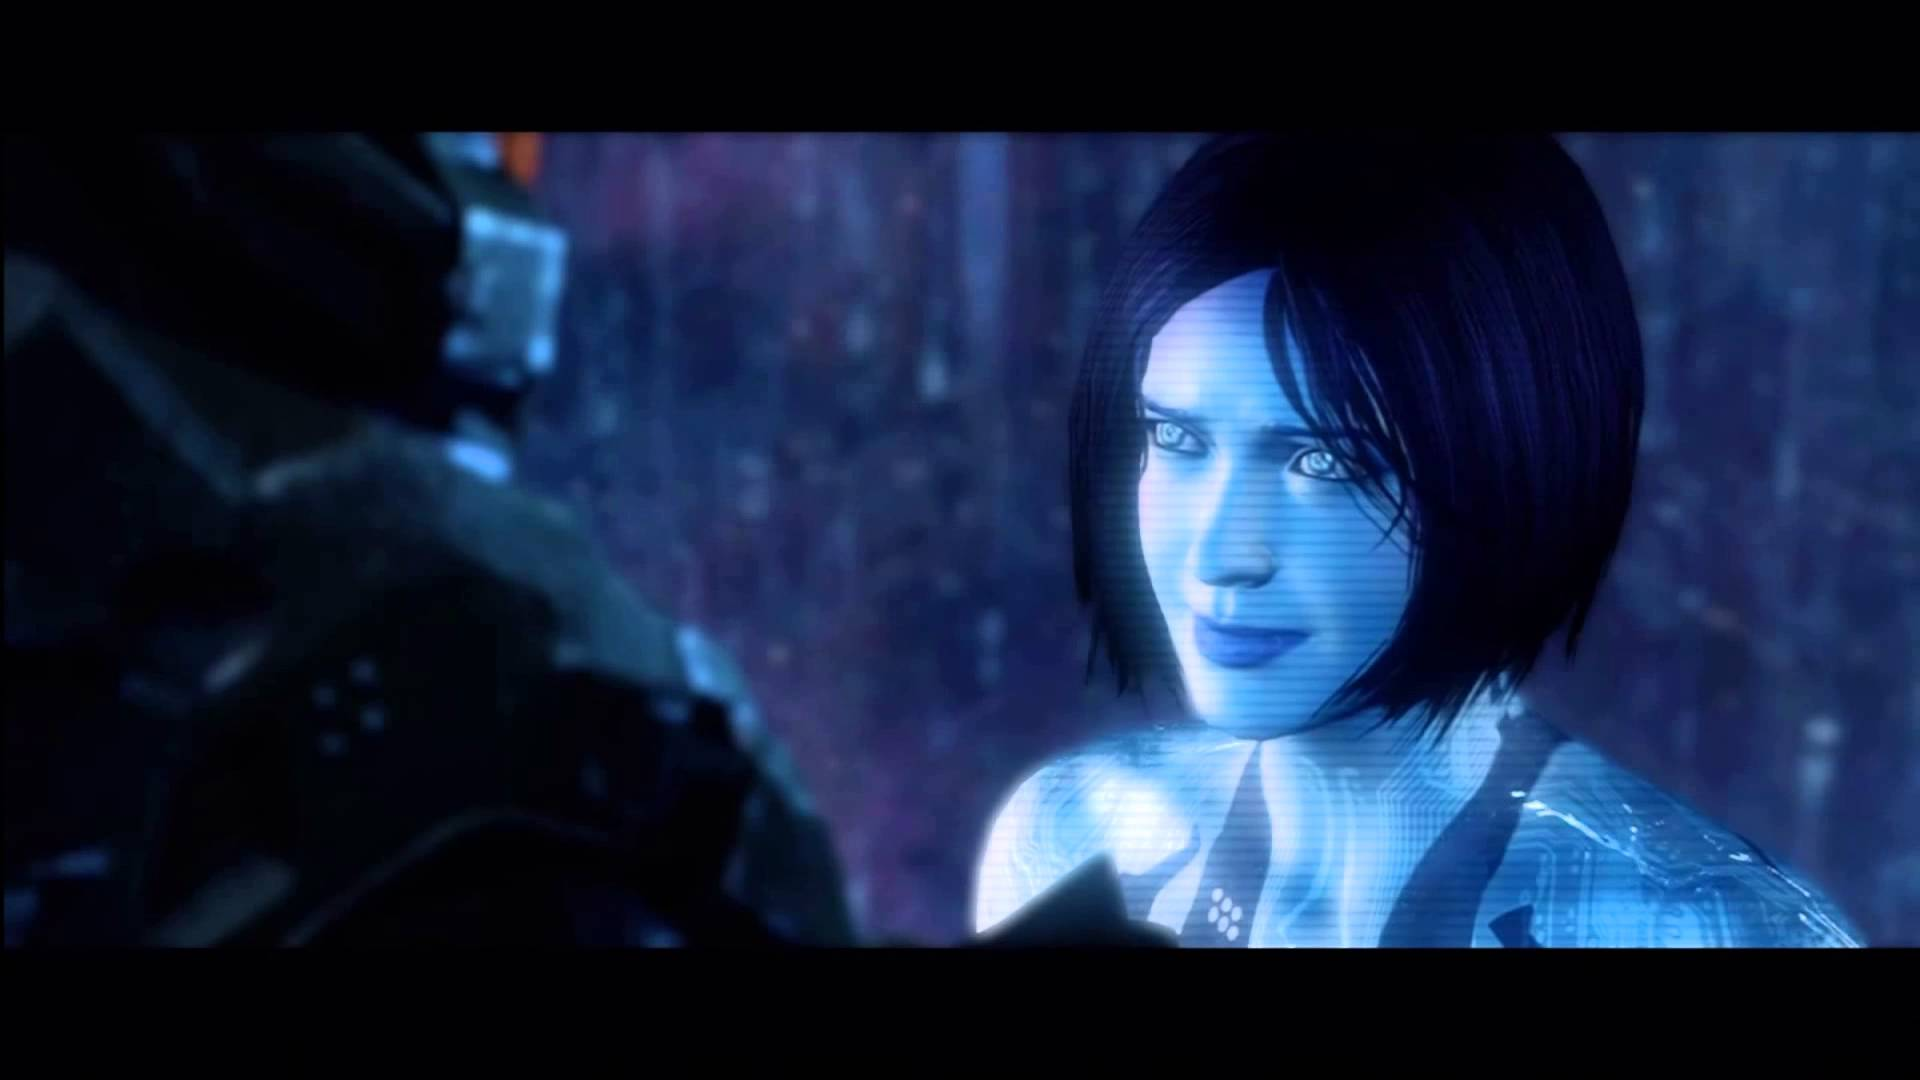 cortana wallpaper2 - photo #17